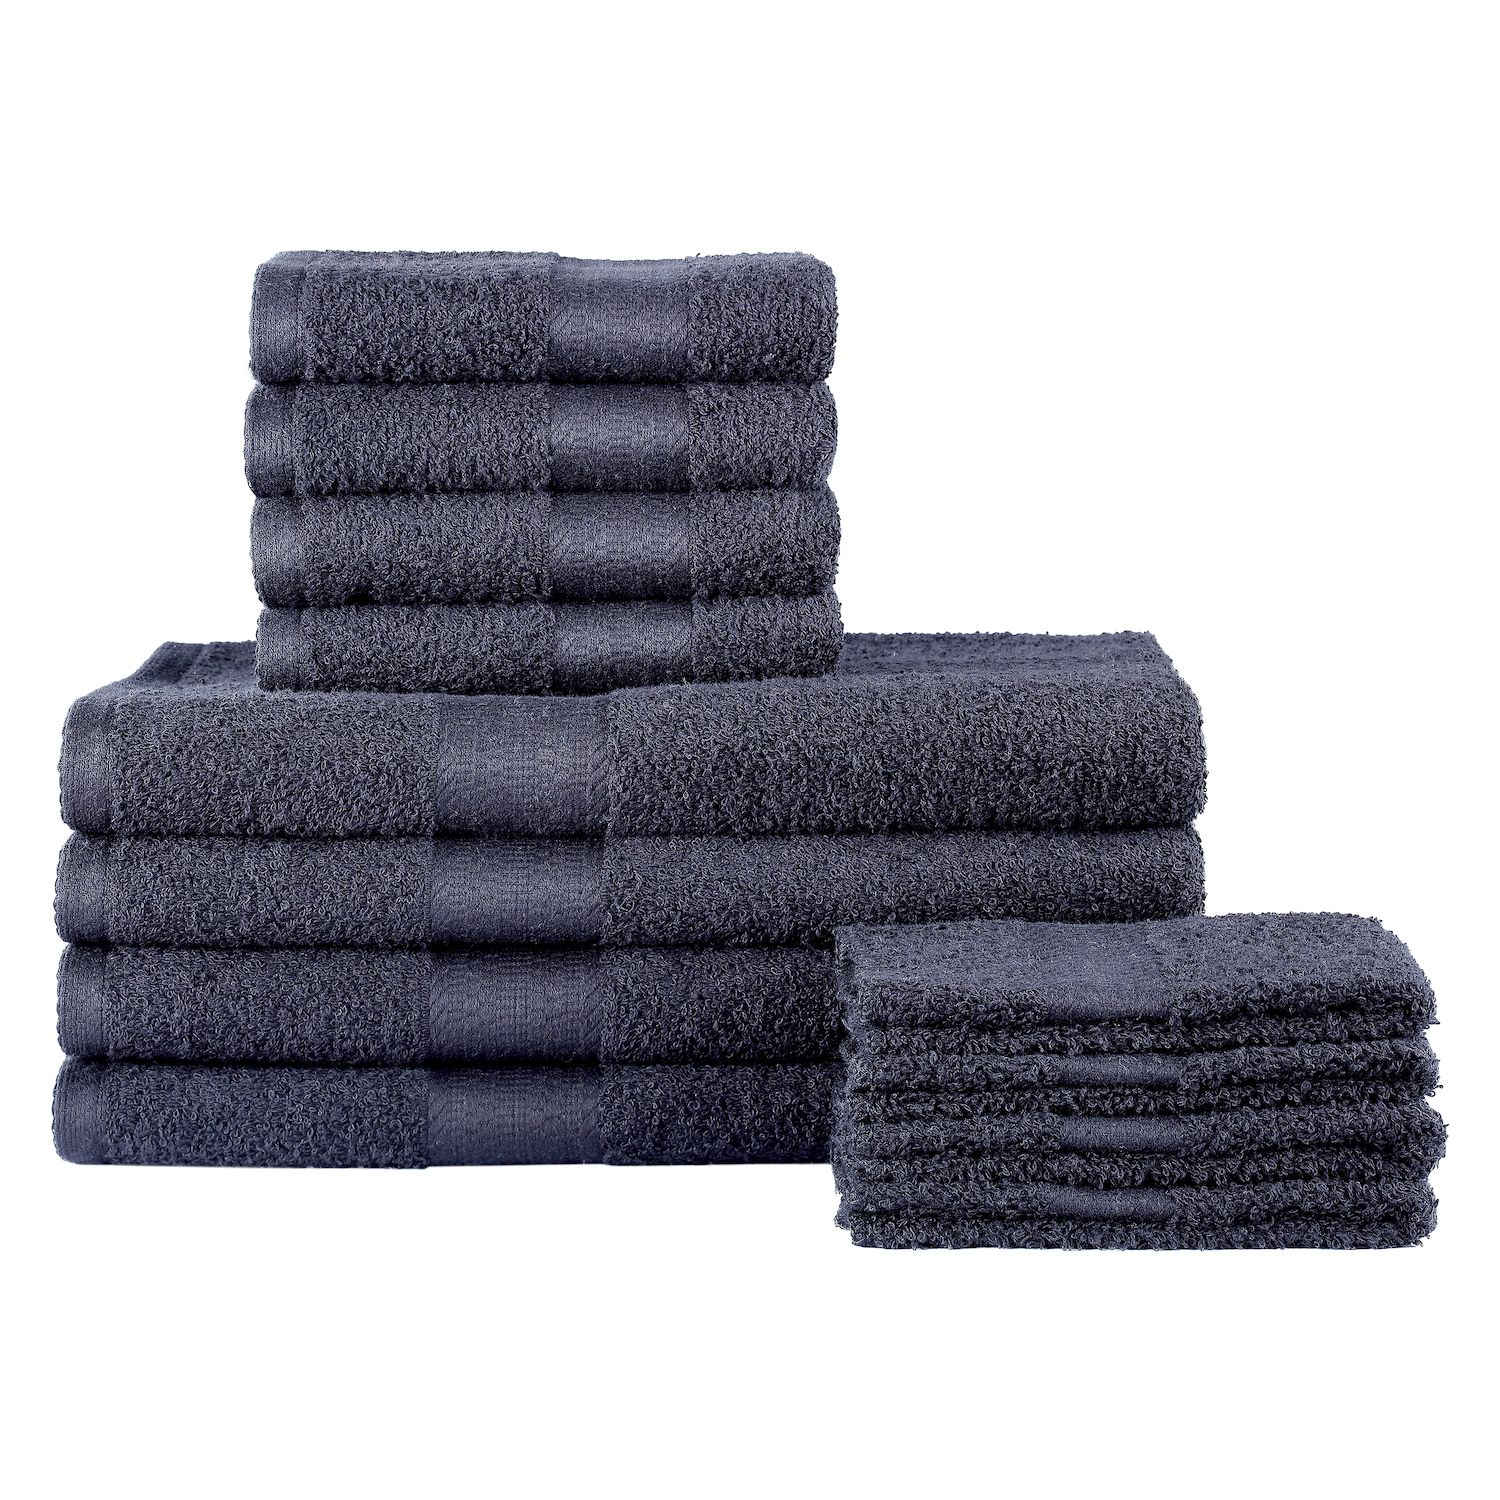 Bath Towel Value Pack